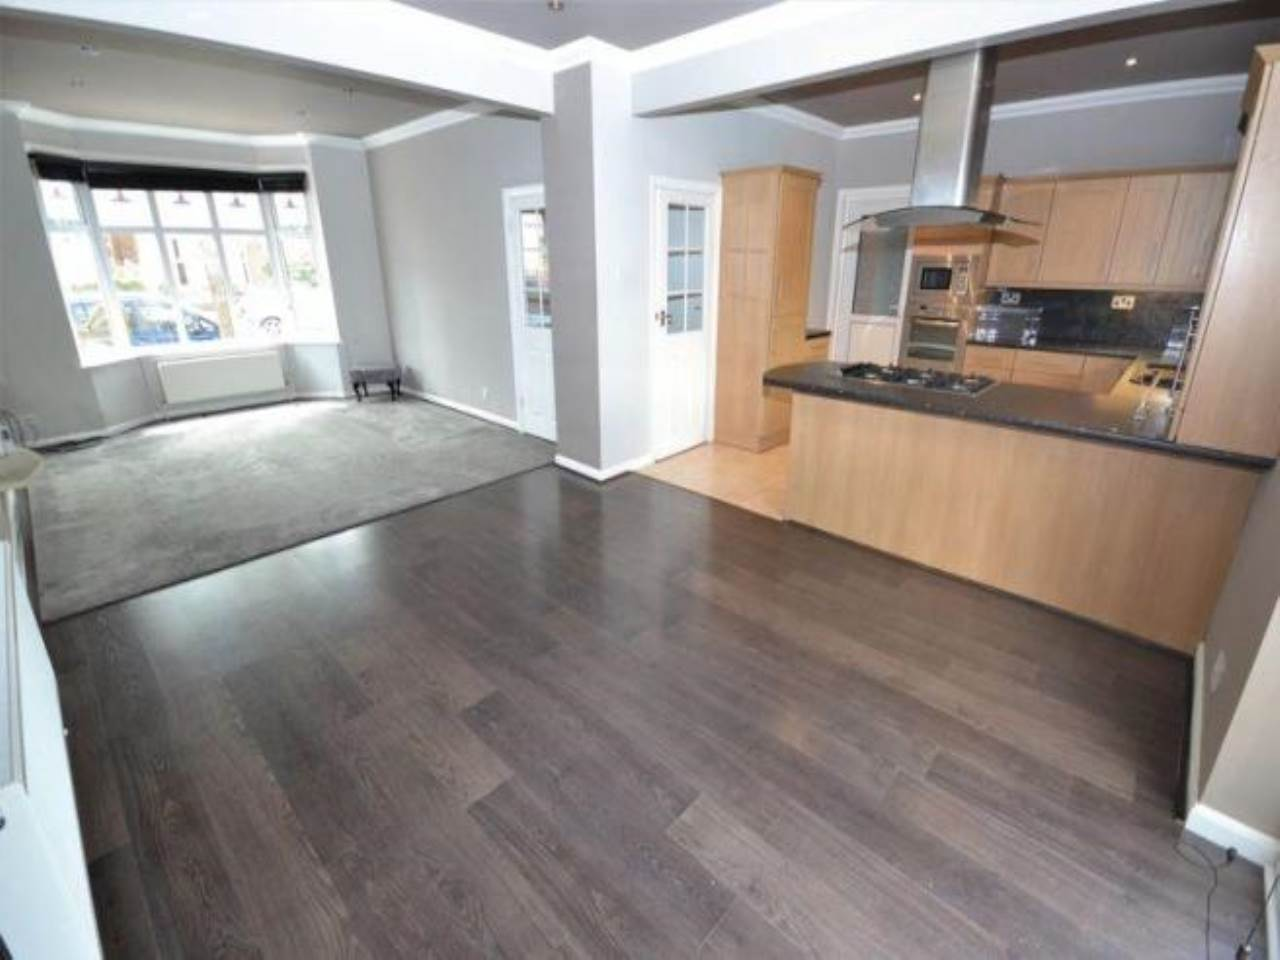 4 bed house for sale in Cowper Road, Moordown  - Property Image 2